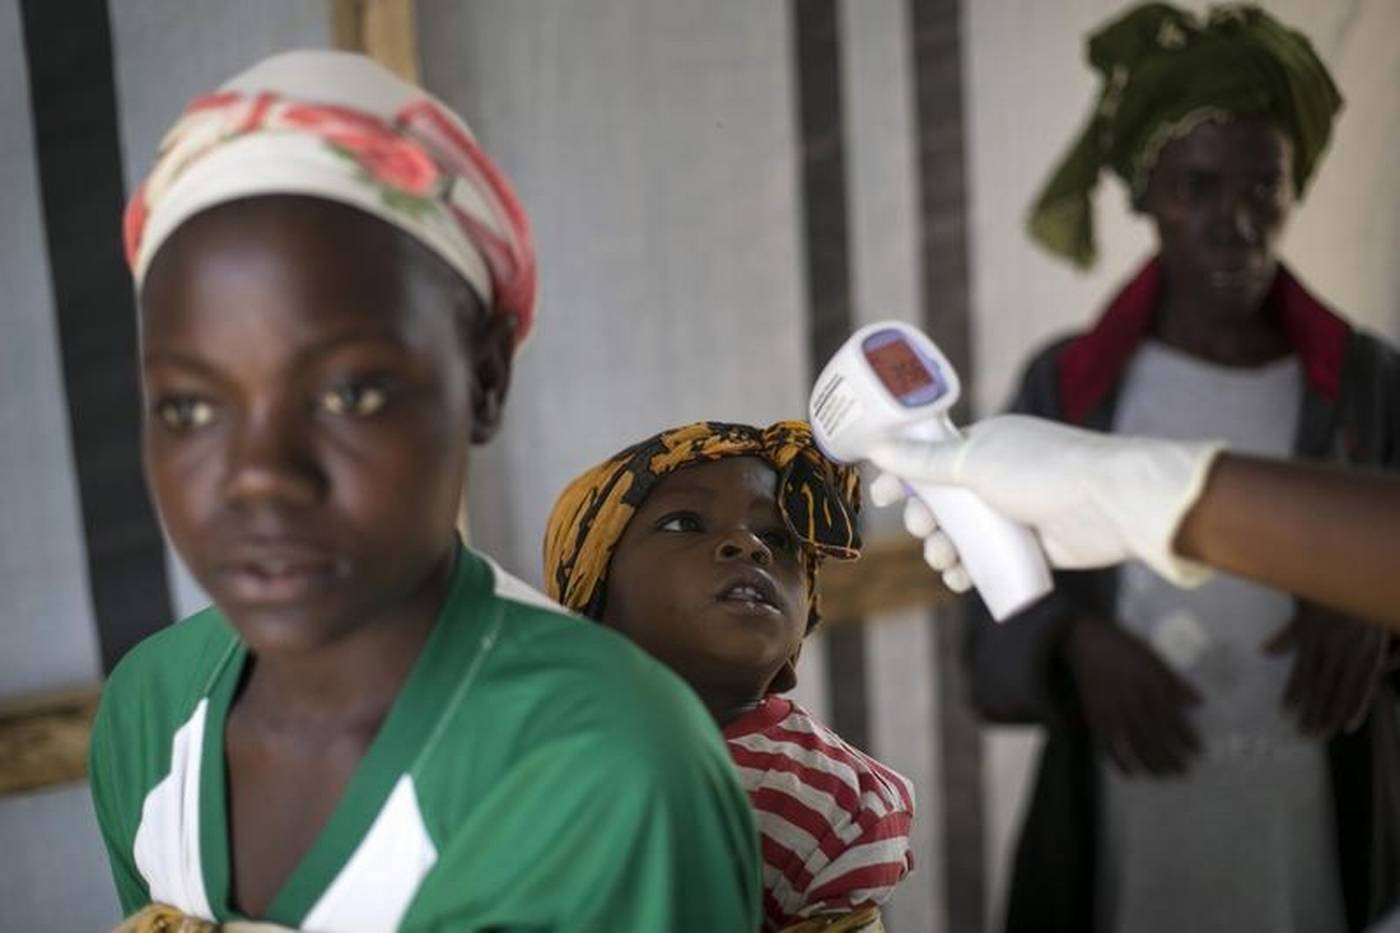 Violence against women rises in Ebola-hit nations - ministers